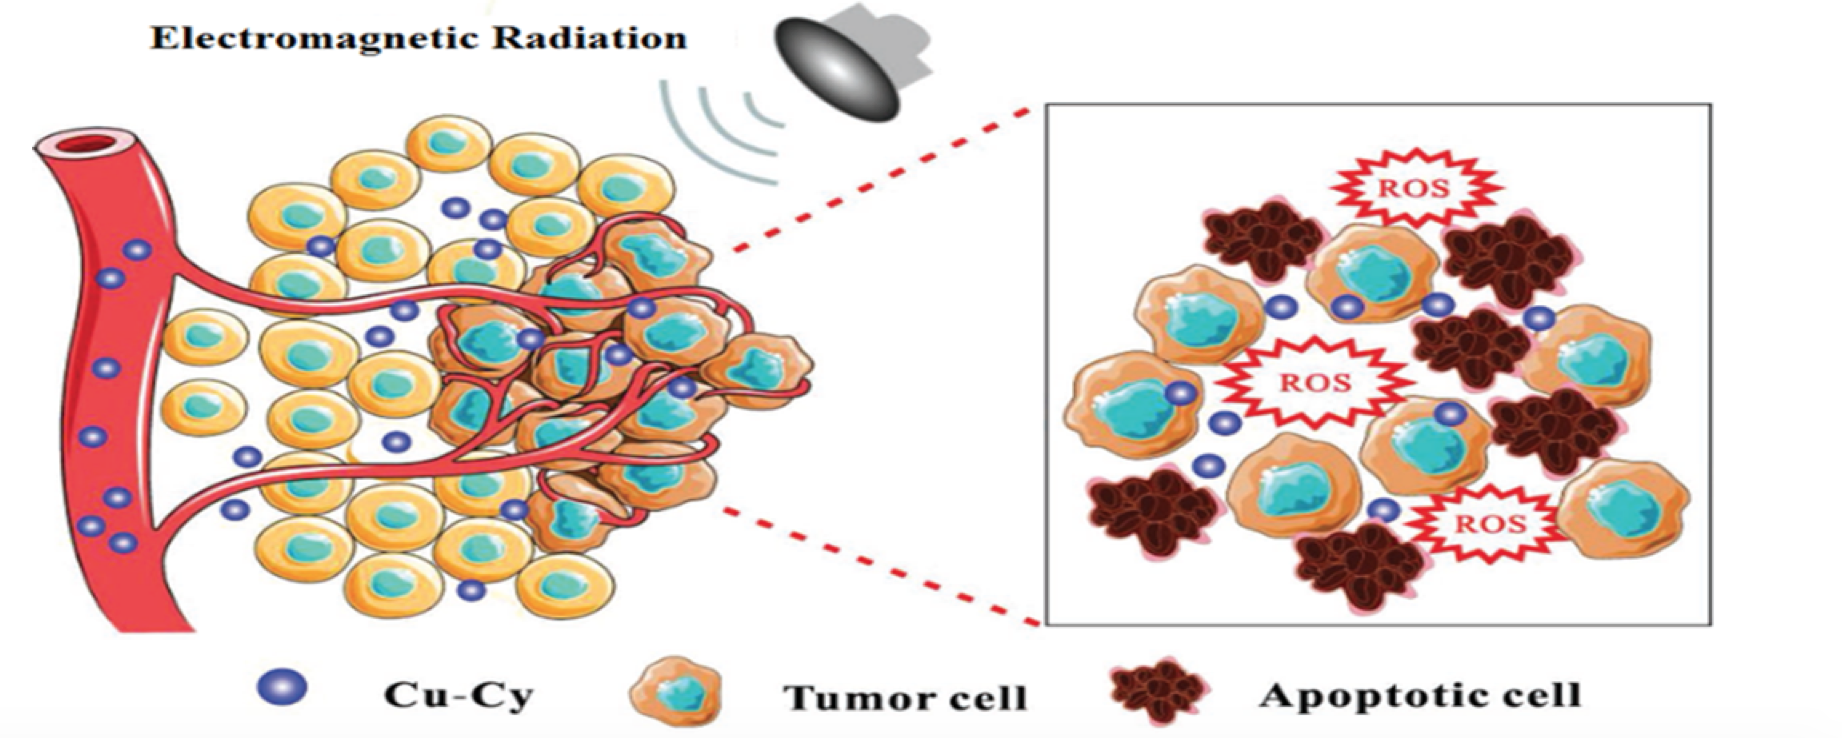 How the activated nanoparticle kills cancer cells